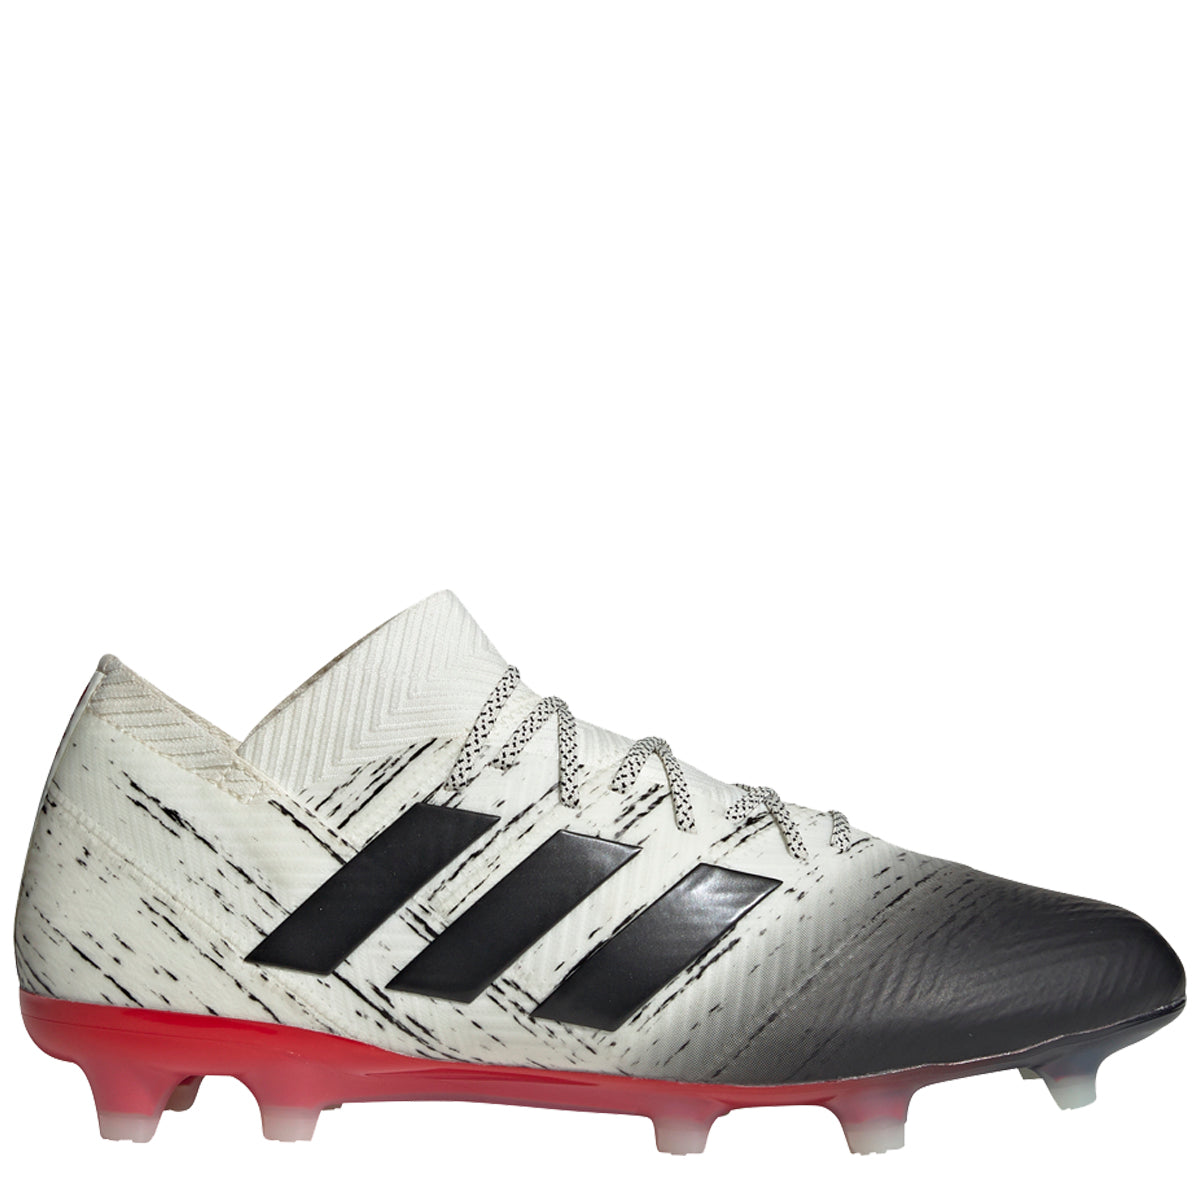 00fb0d581d2 Men s Nemeziz 18.1 FG – Gazelle Sports Soccer